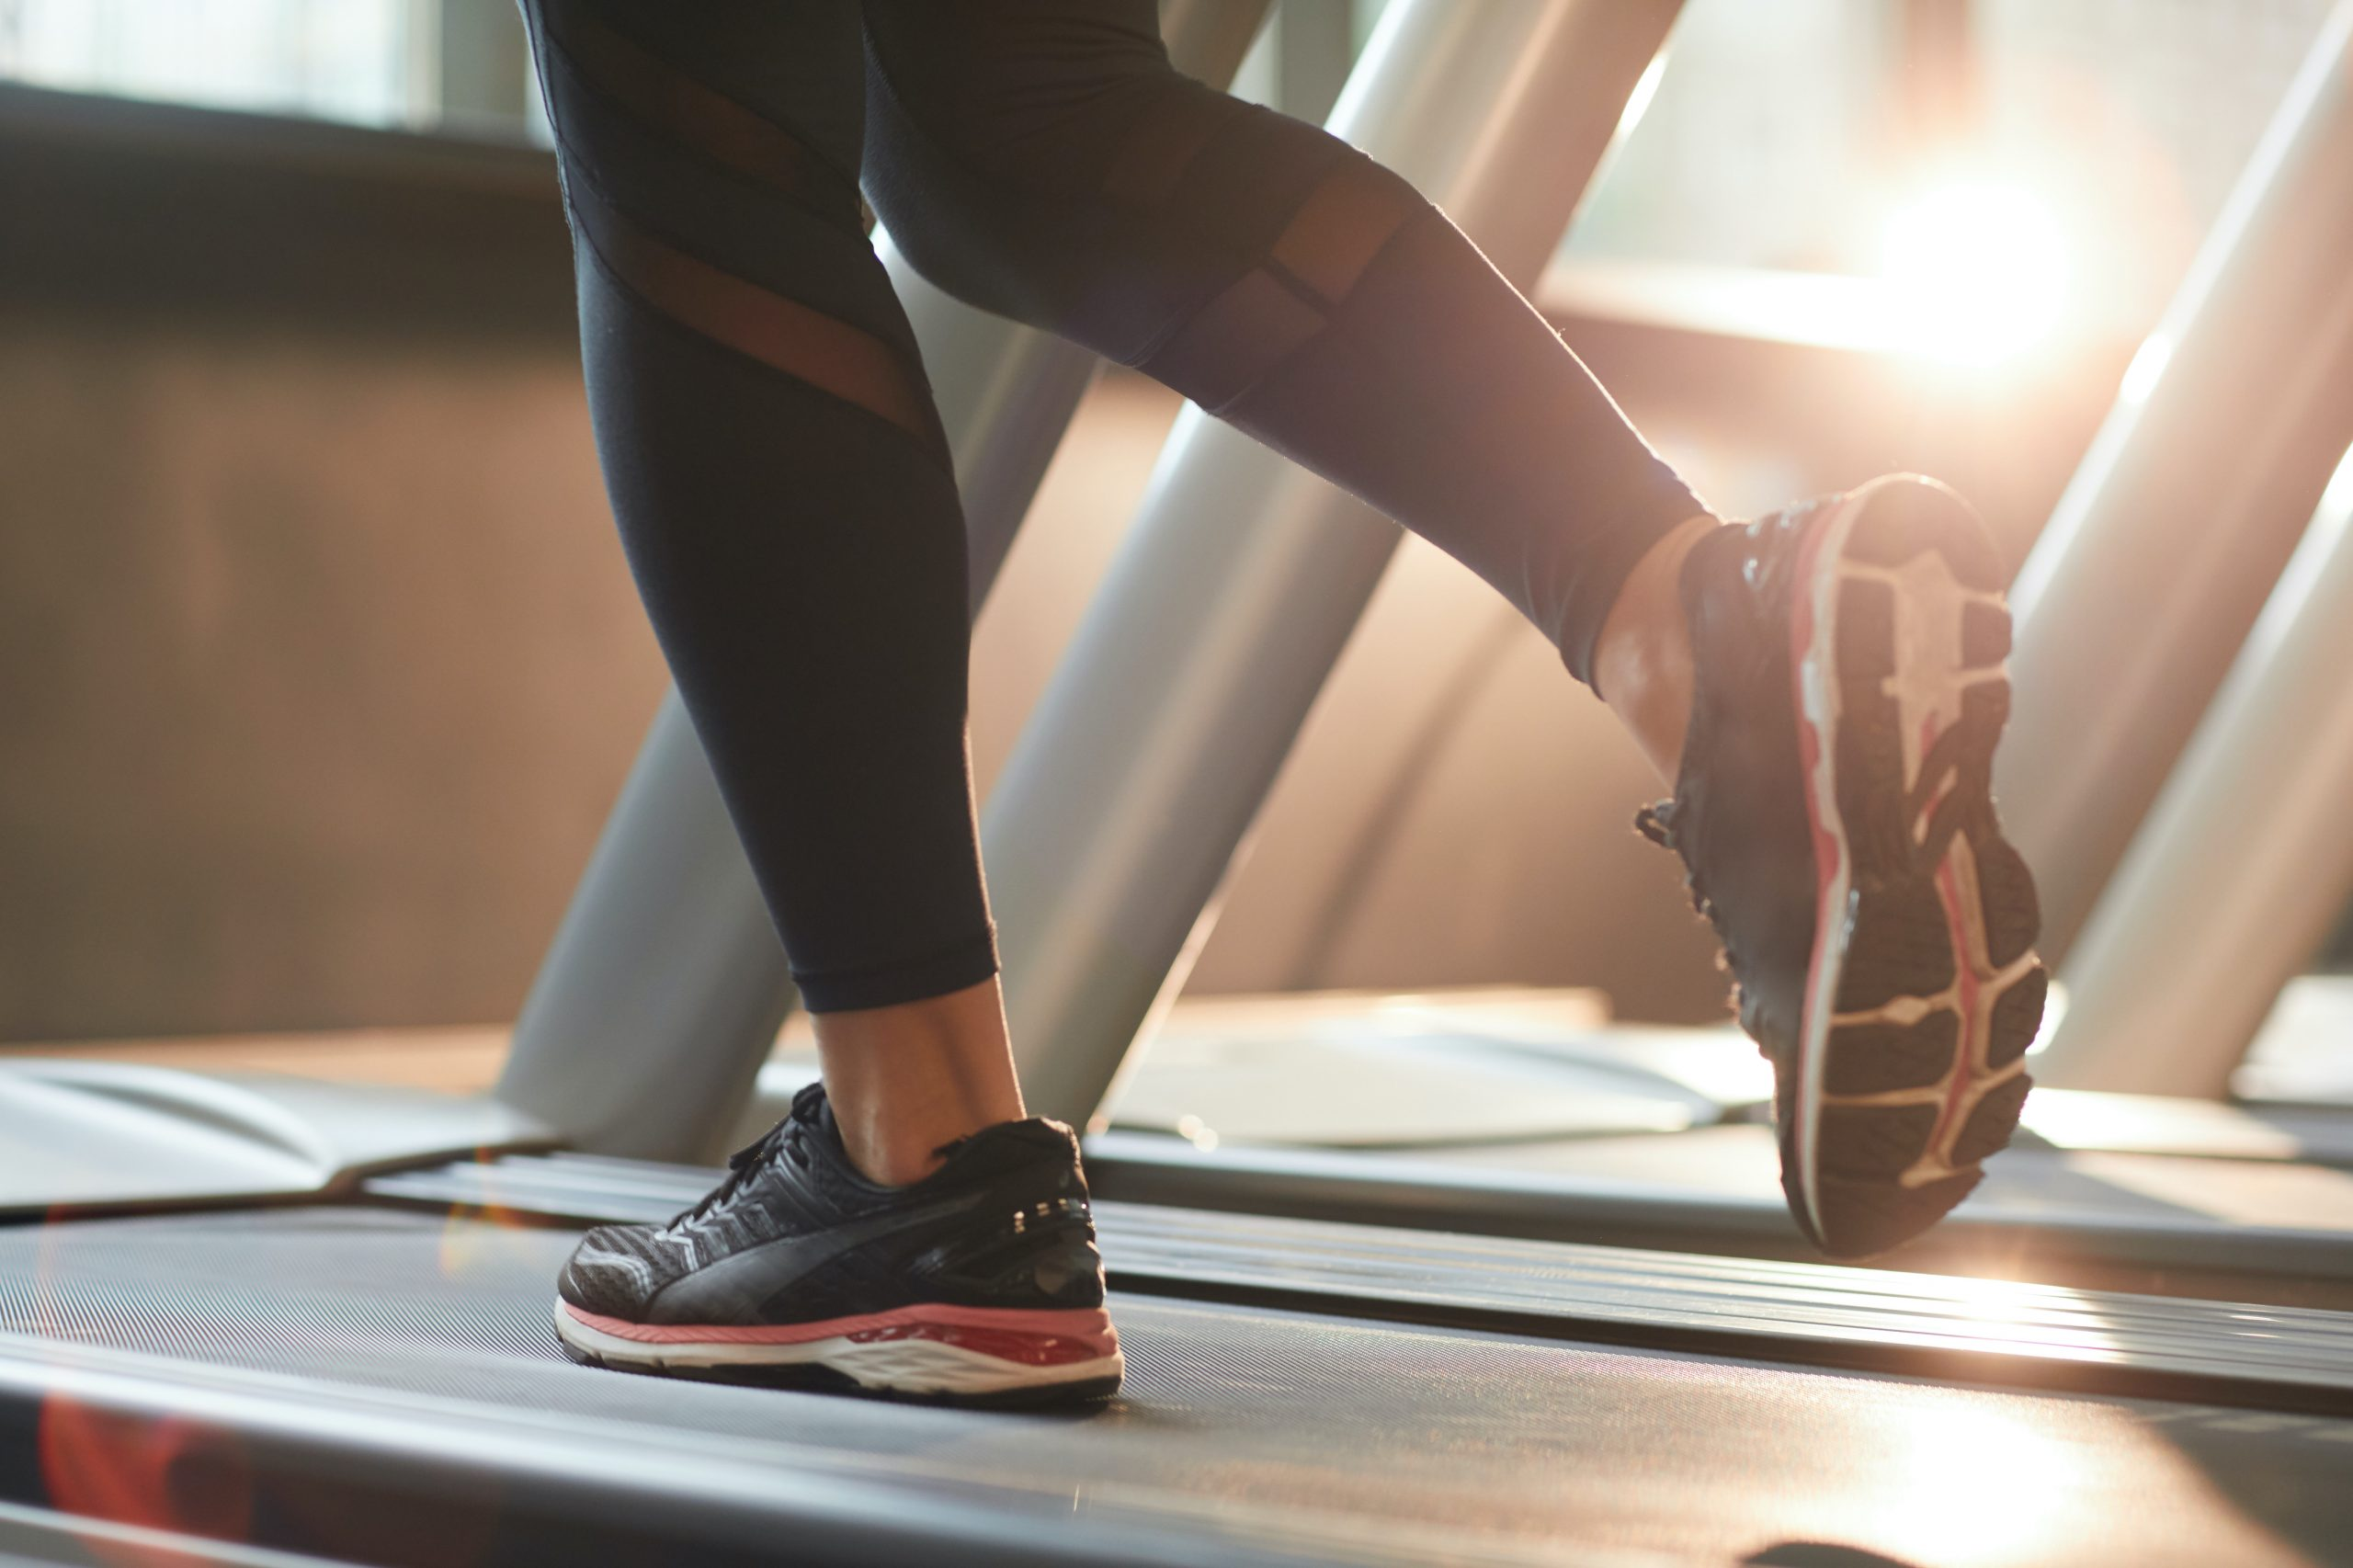 woman reducing stress by running on treadmill as part of a corporate wellness program